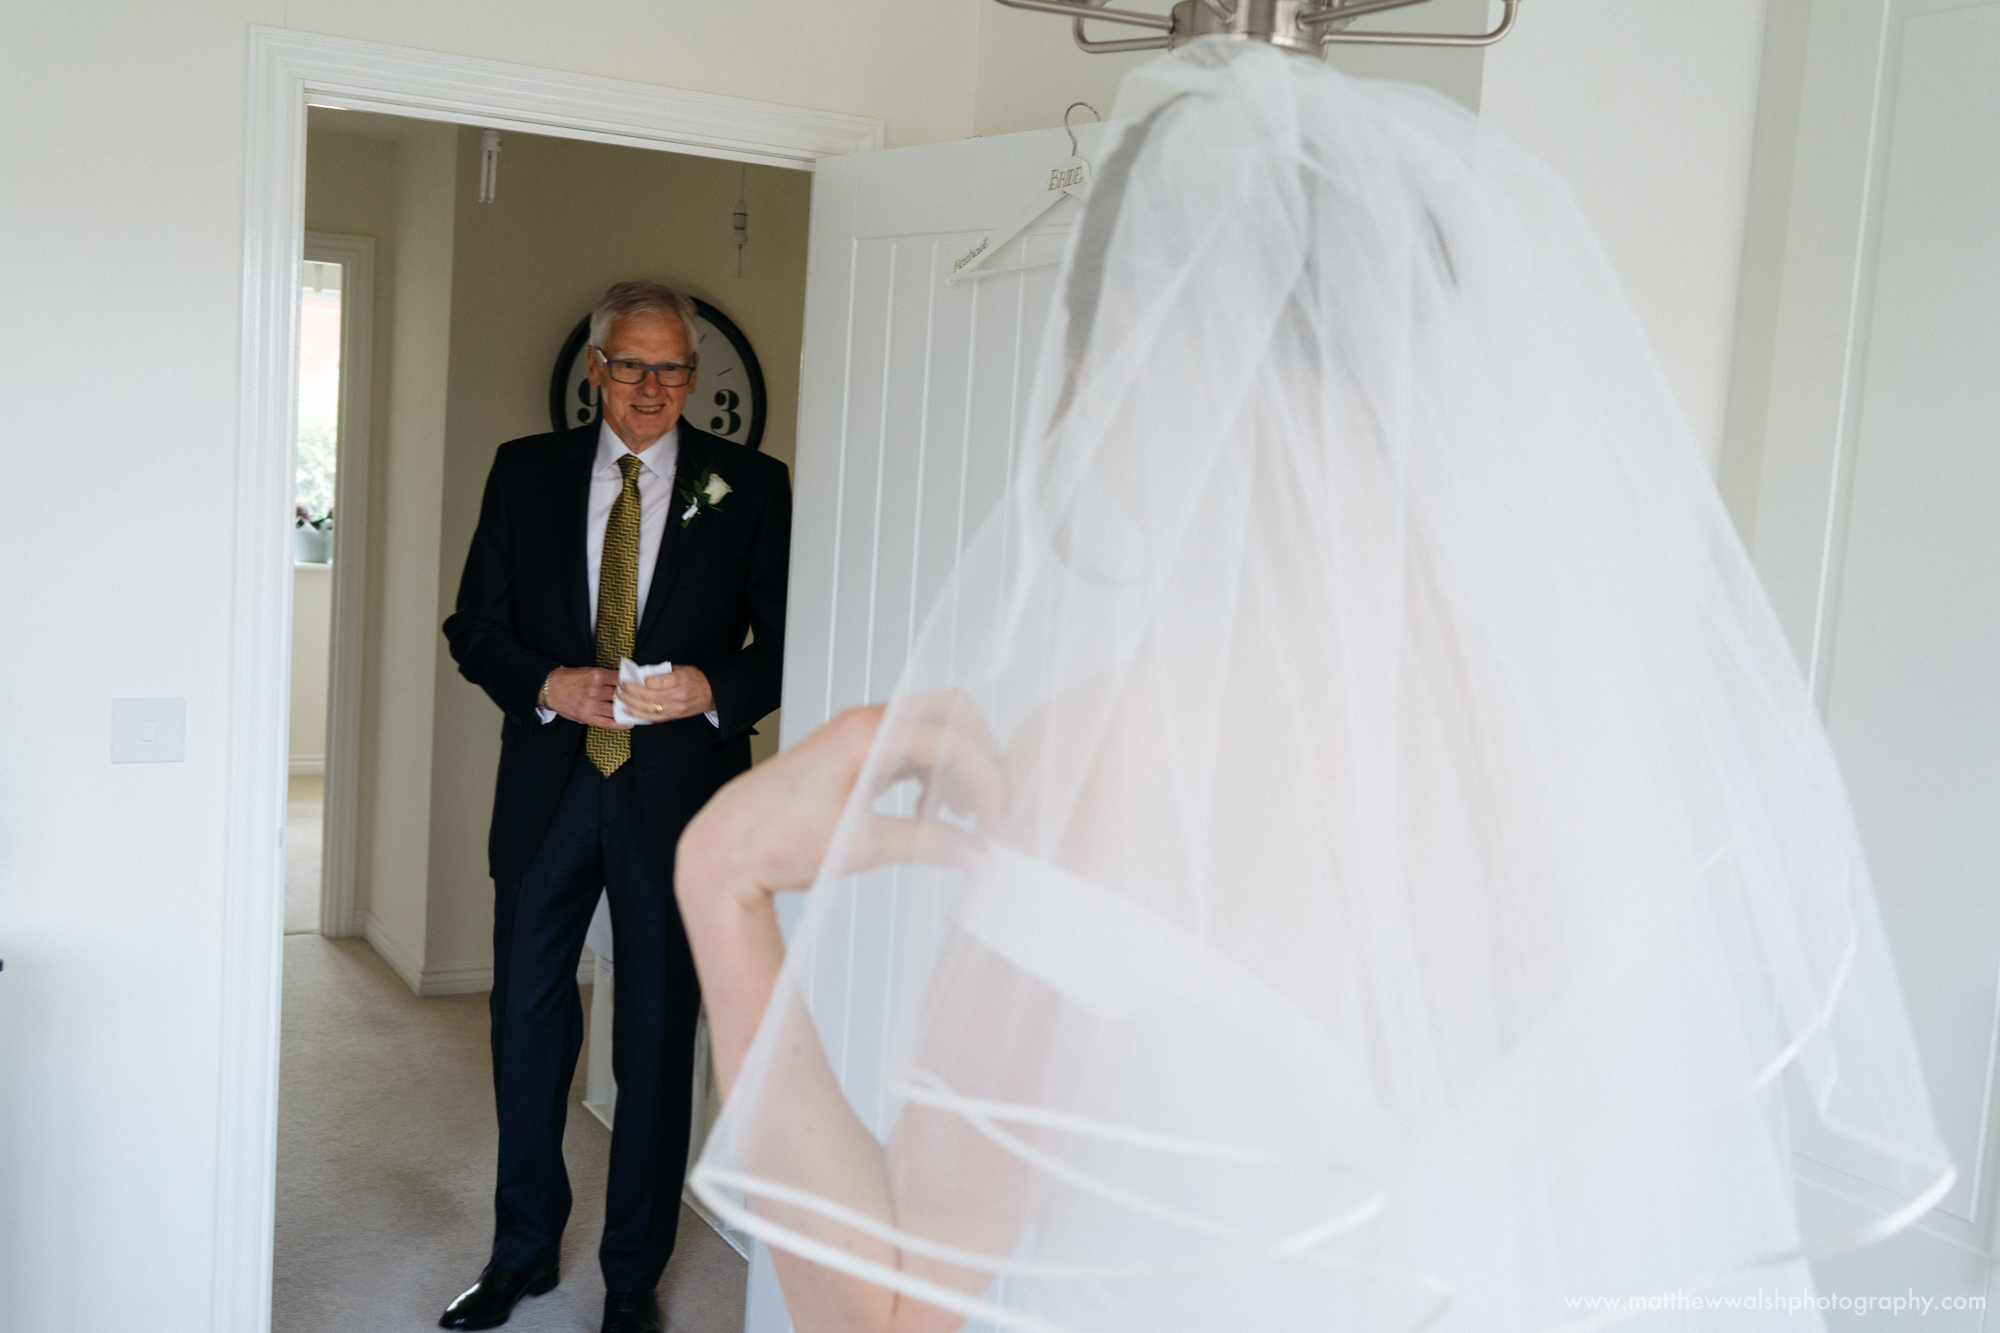 The first look as the father of the bride sees his daughter in her wedding dress for the first time